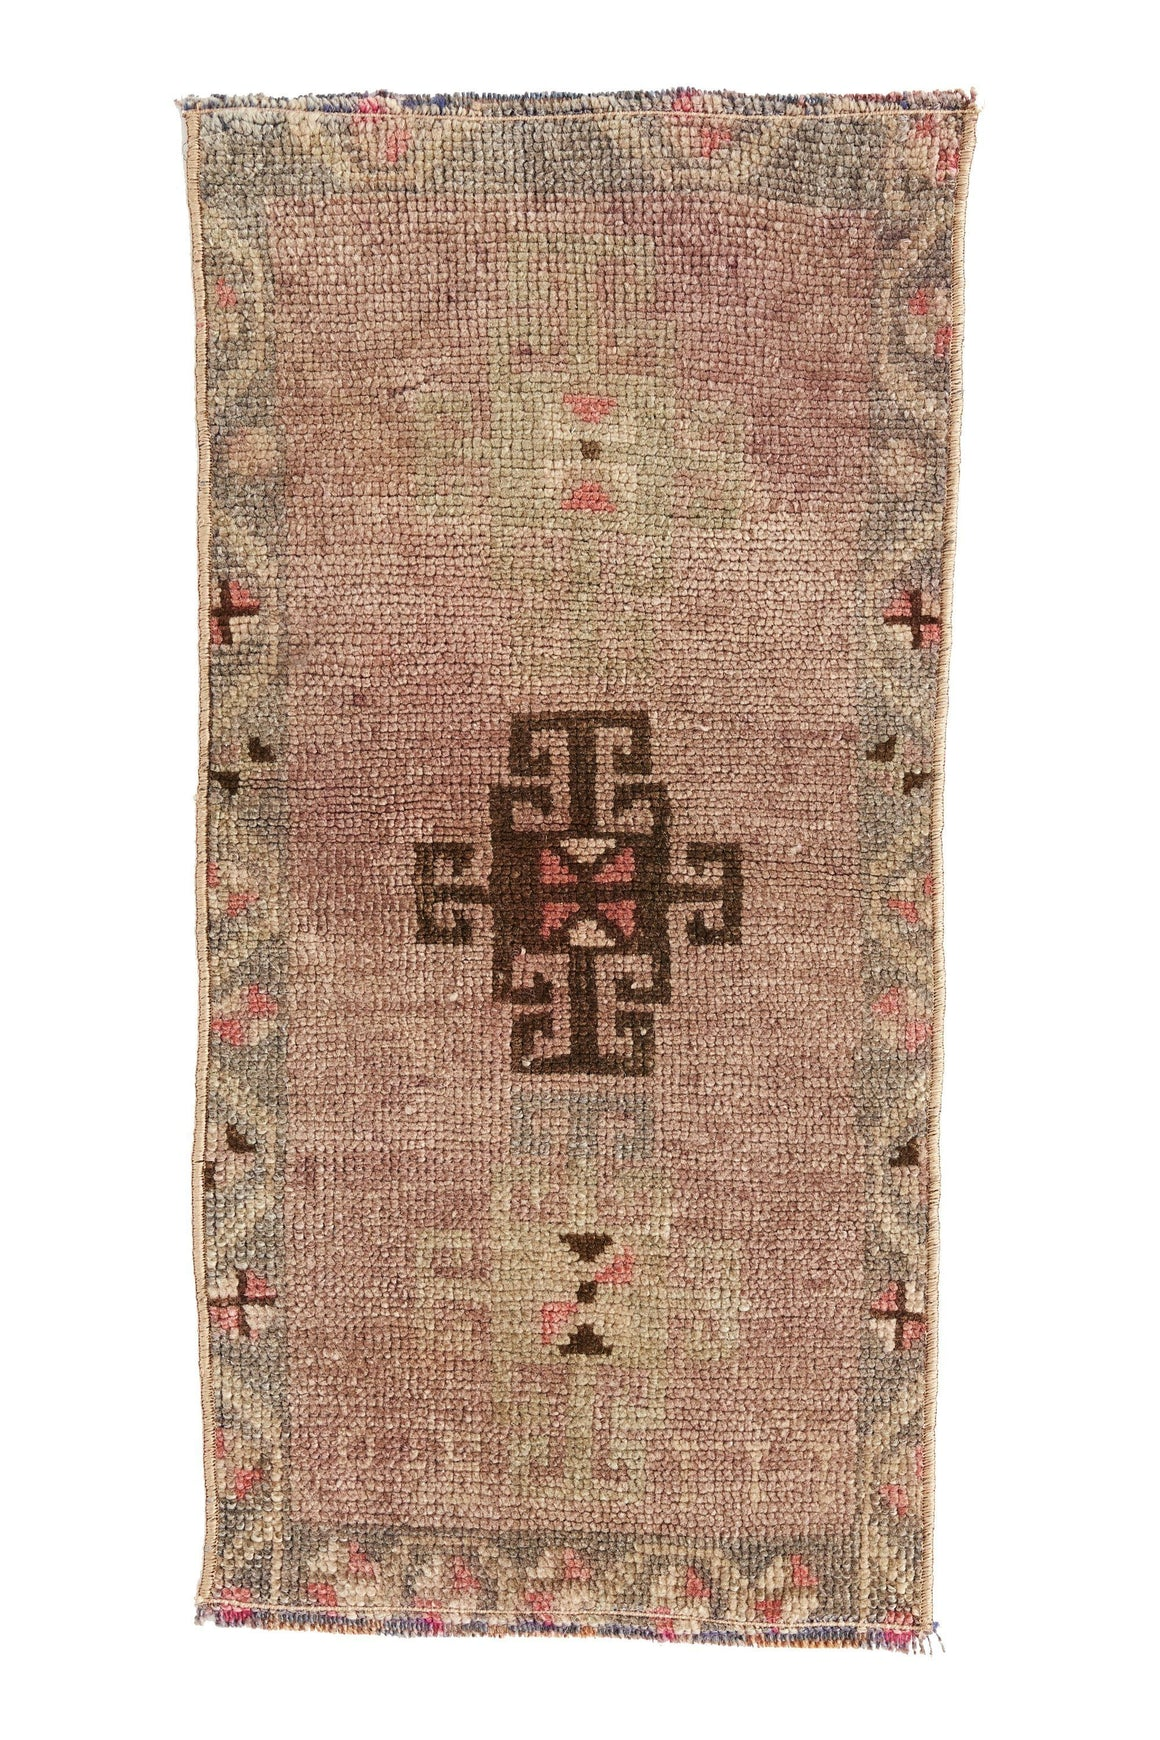 No. 405 Petite Rug - 1'3'' x 2'7'' - Canary Lane - Curated Textiles